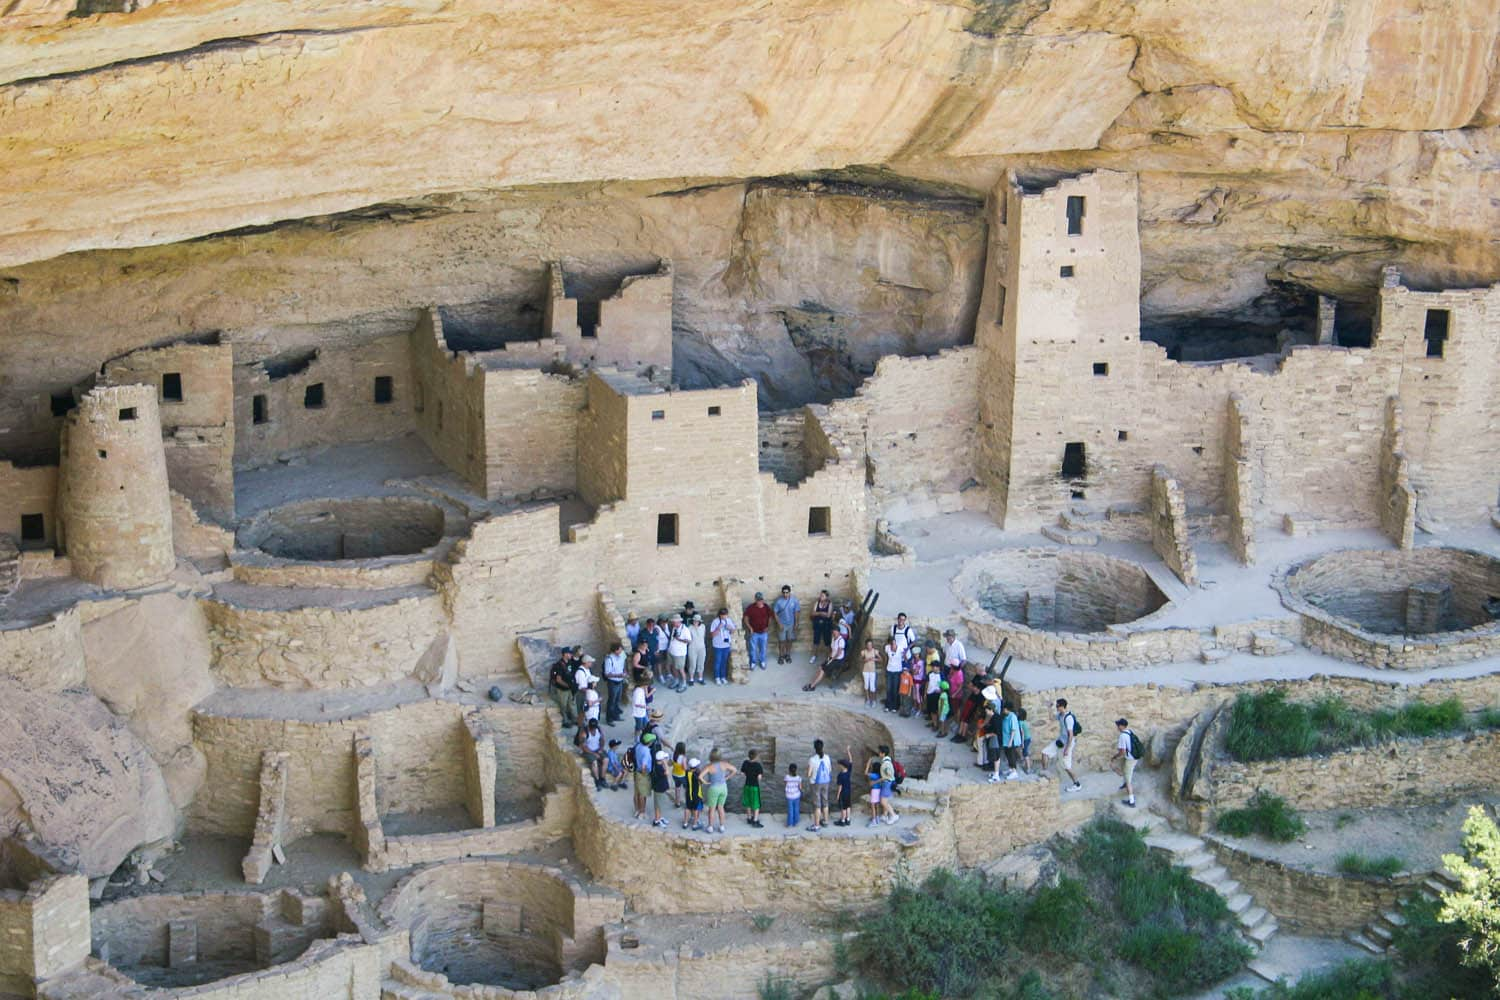 mesa verde national park latino personals Vandals permanently damaged sandstone walls and destroyed archeological artifacts in the process of inscribing their names in mesa verde national park.